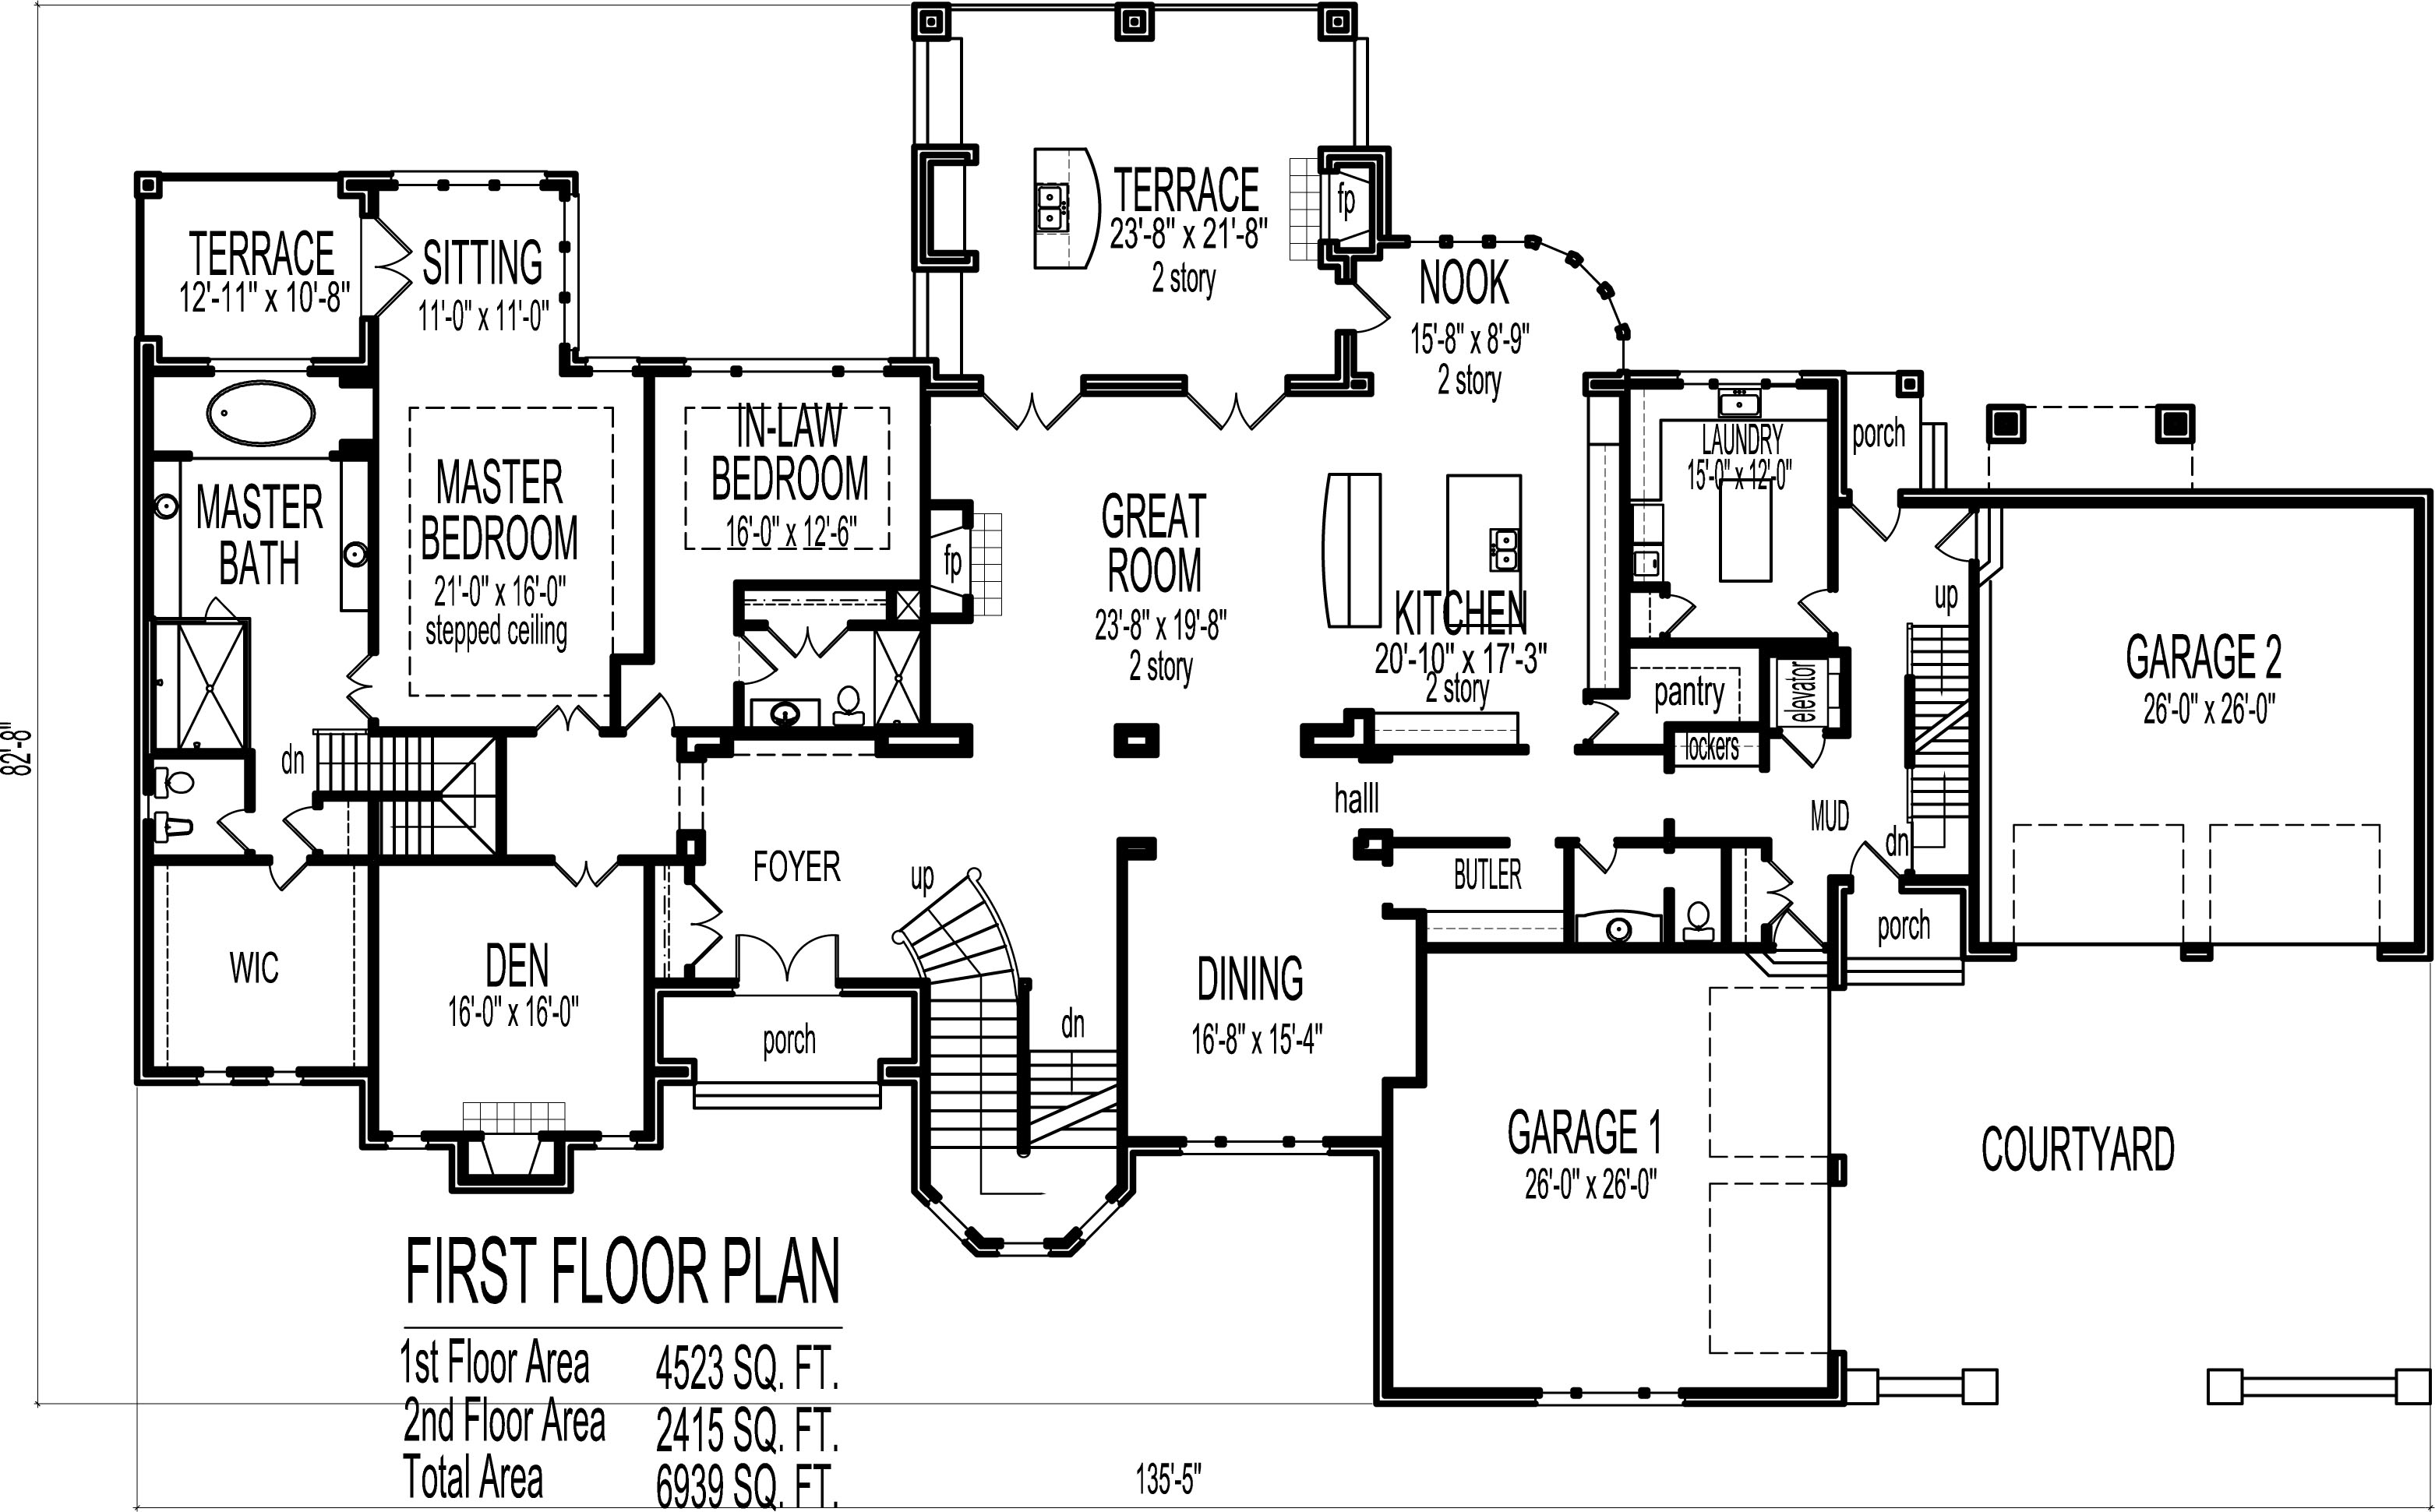 Mansion House Floor Plans Blueprints 6 Bedroom 2 Story 10000 ...